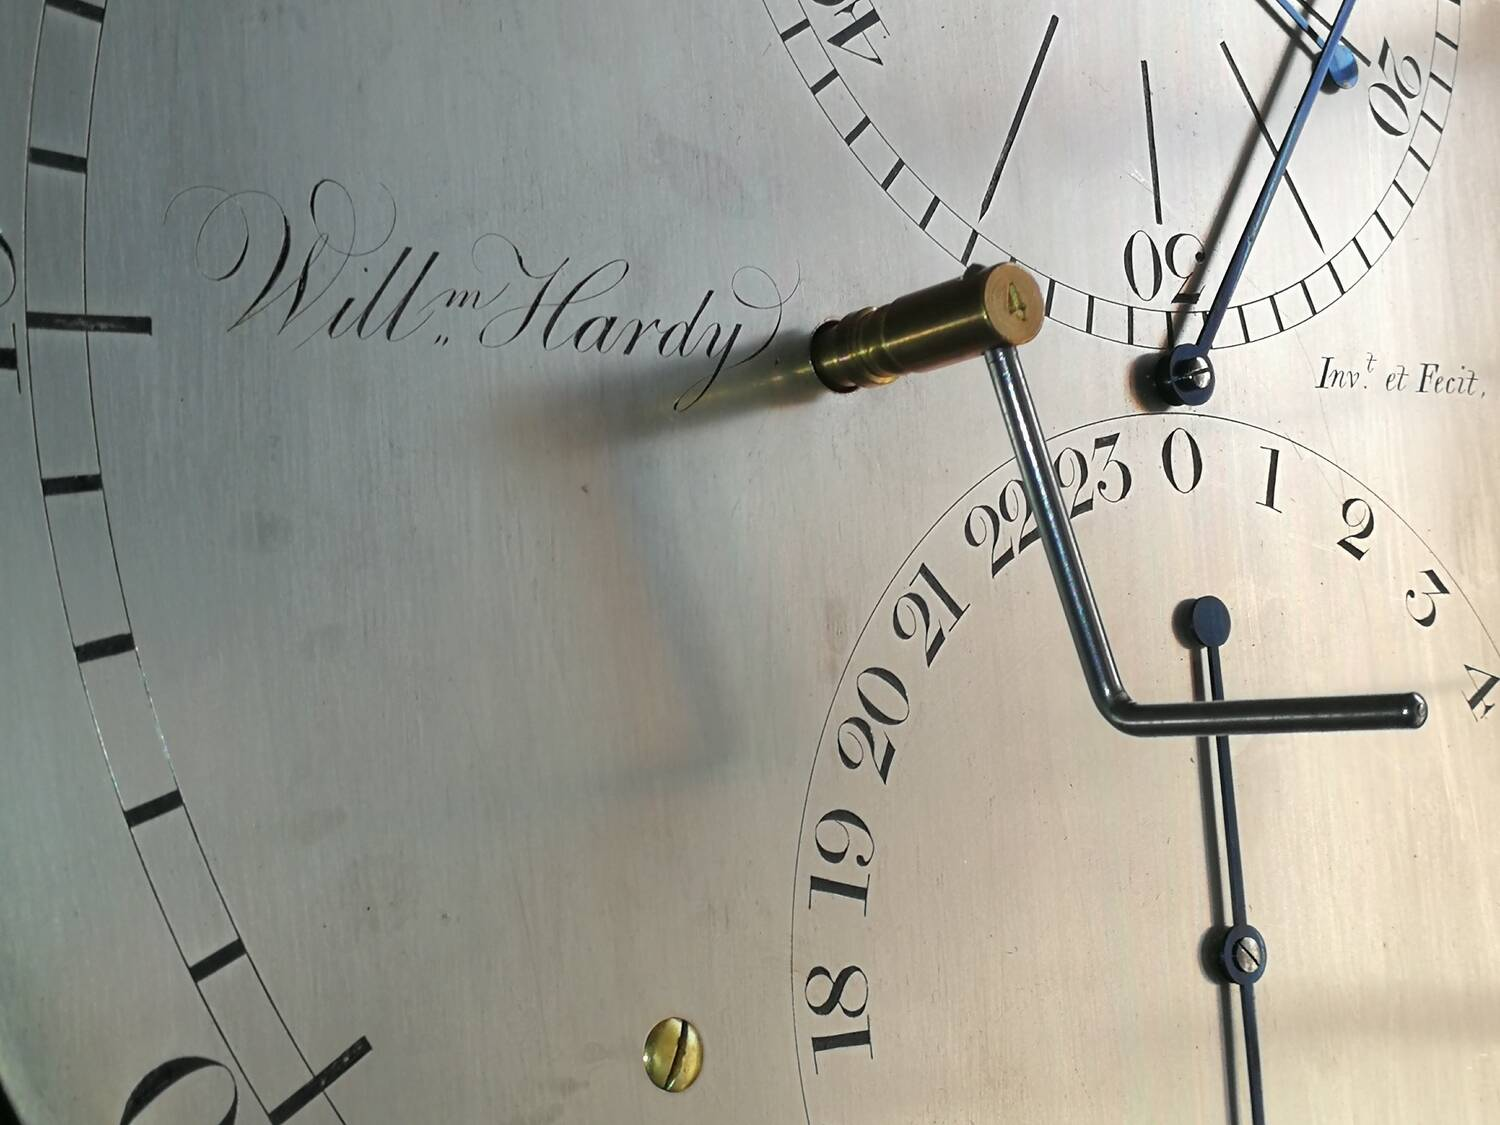 A close-up of a silver dial on a clock face. It features two circles, one numbered for minutes and the other for hours. It is engraved with the maker's name: Willm Hardy.